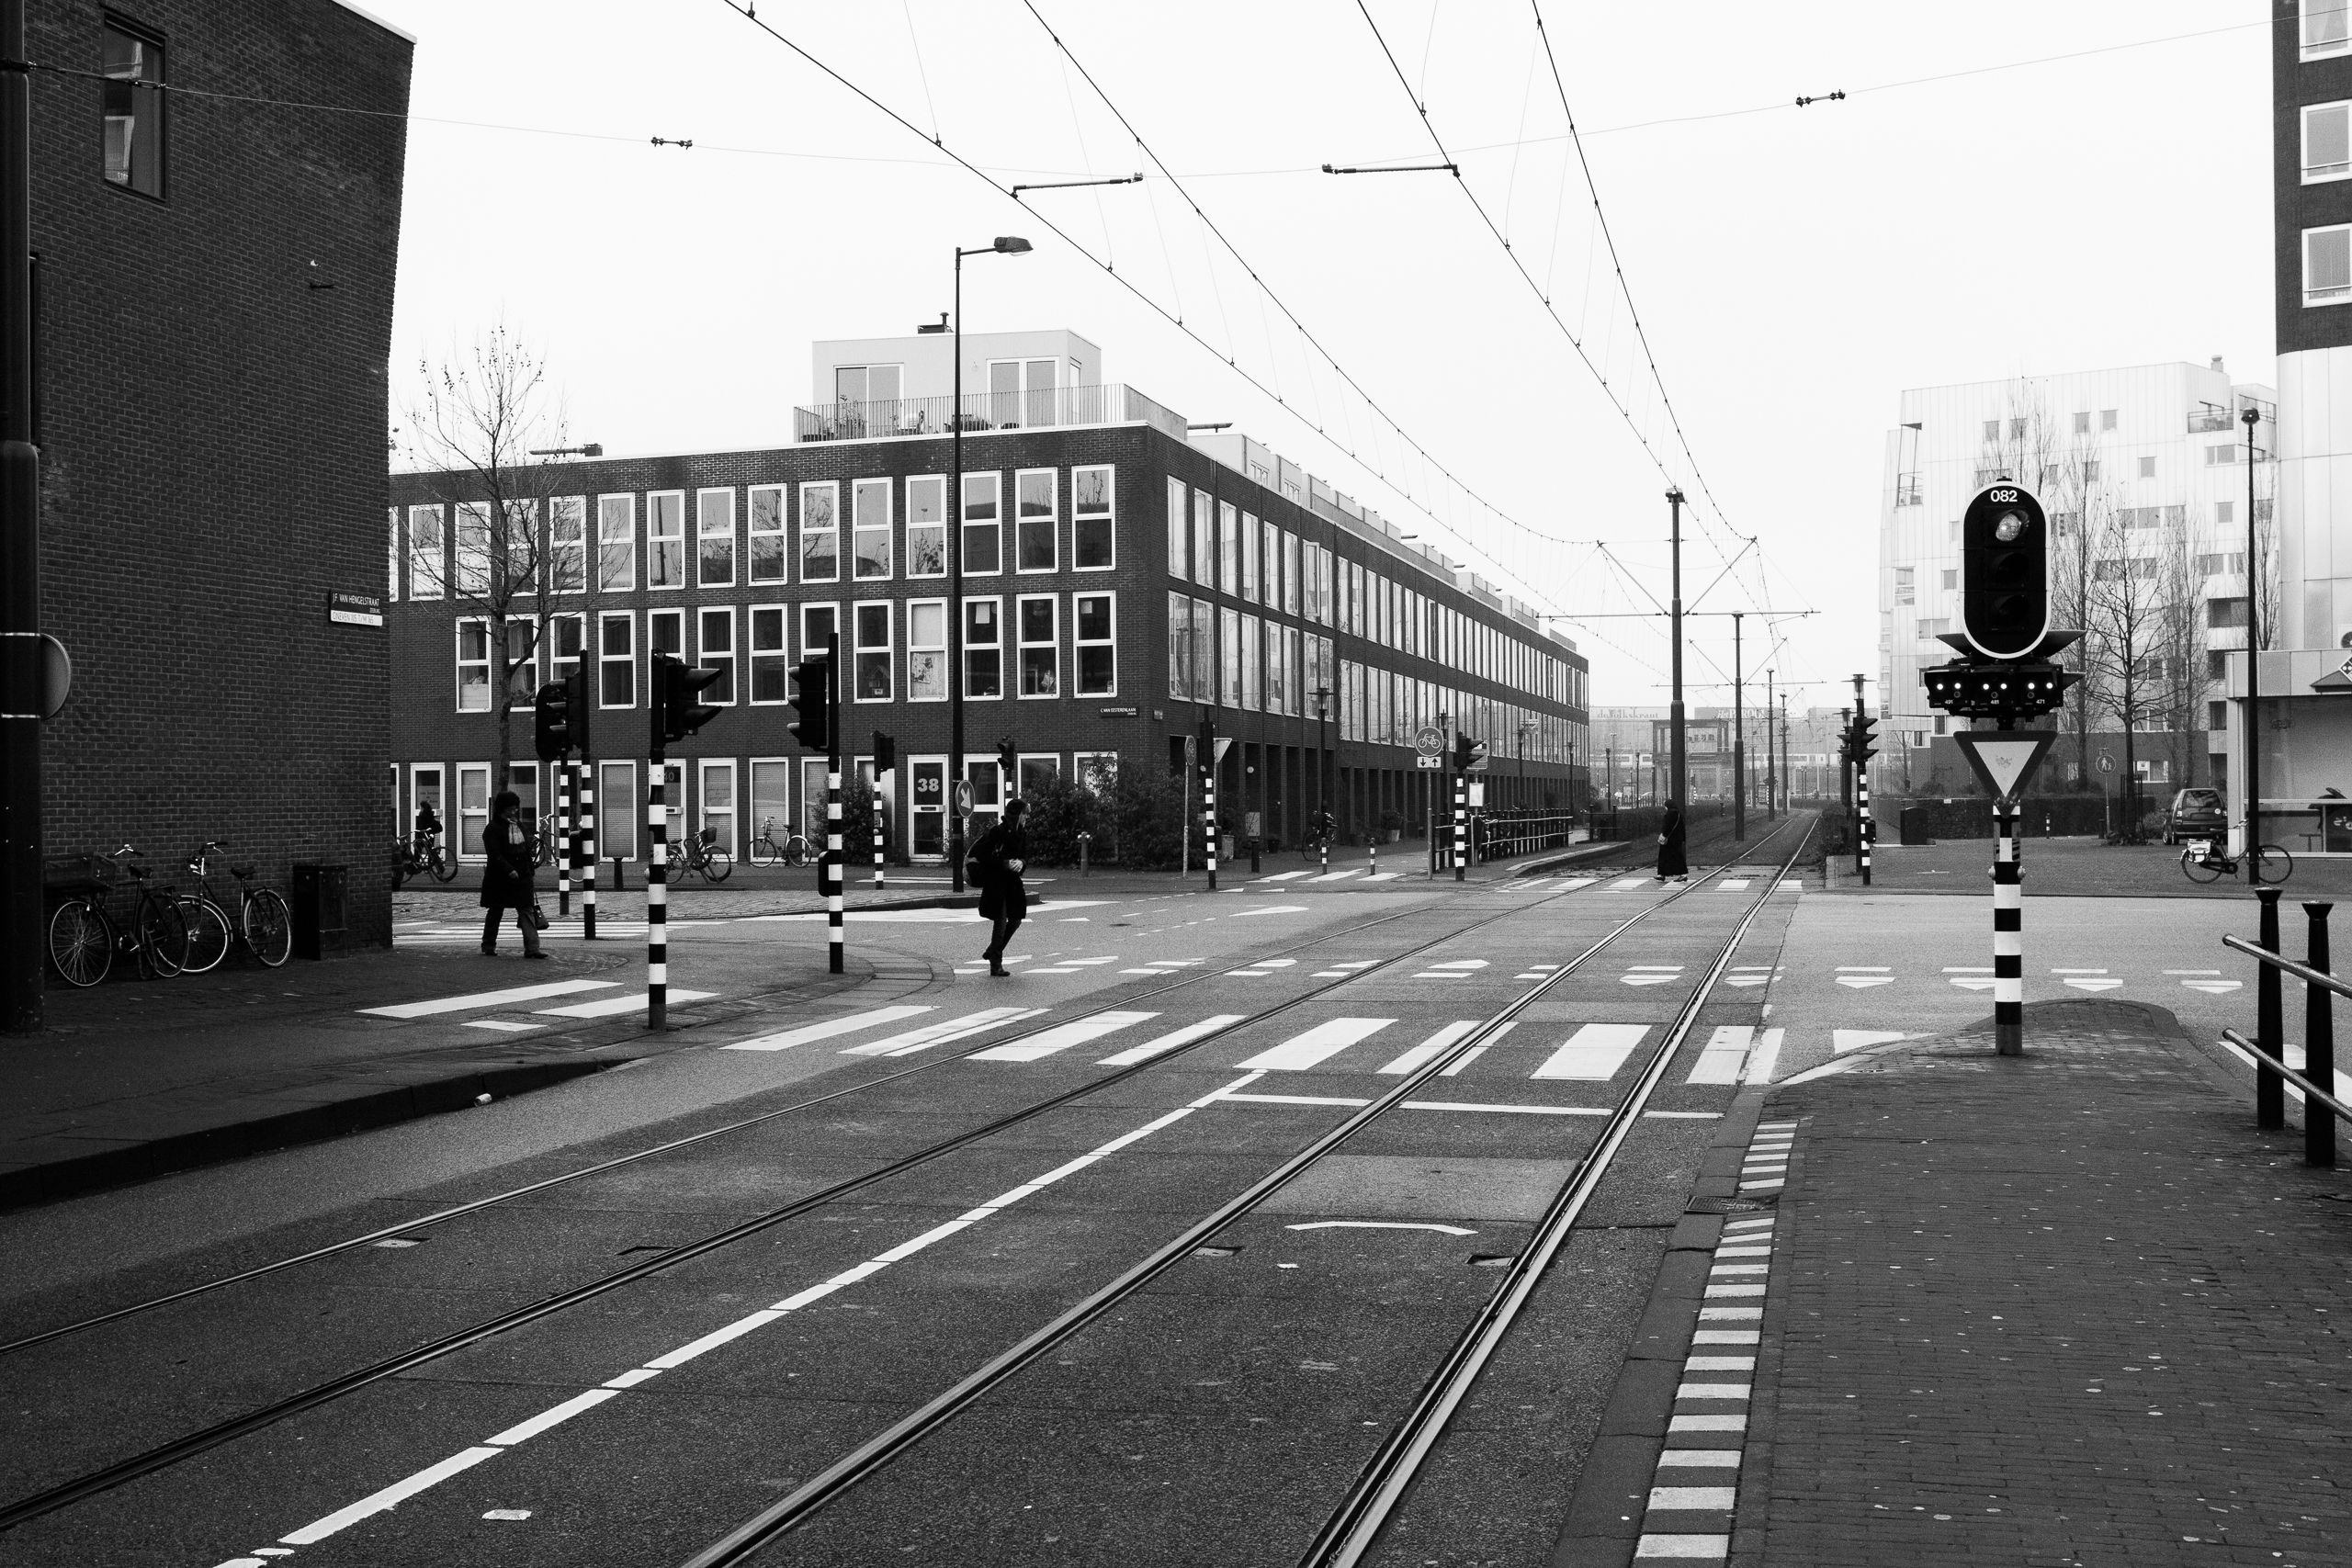 Tram Tracks, Amsterdam The Netherlands